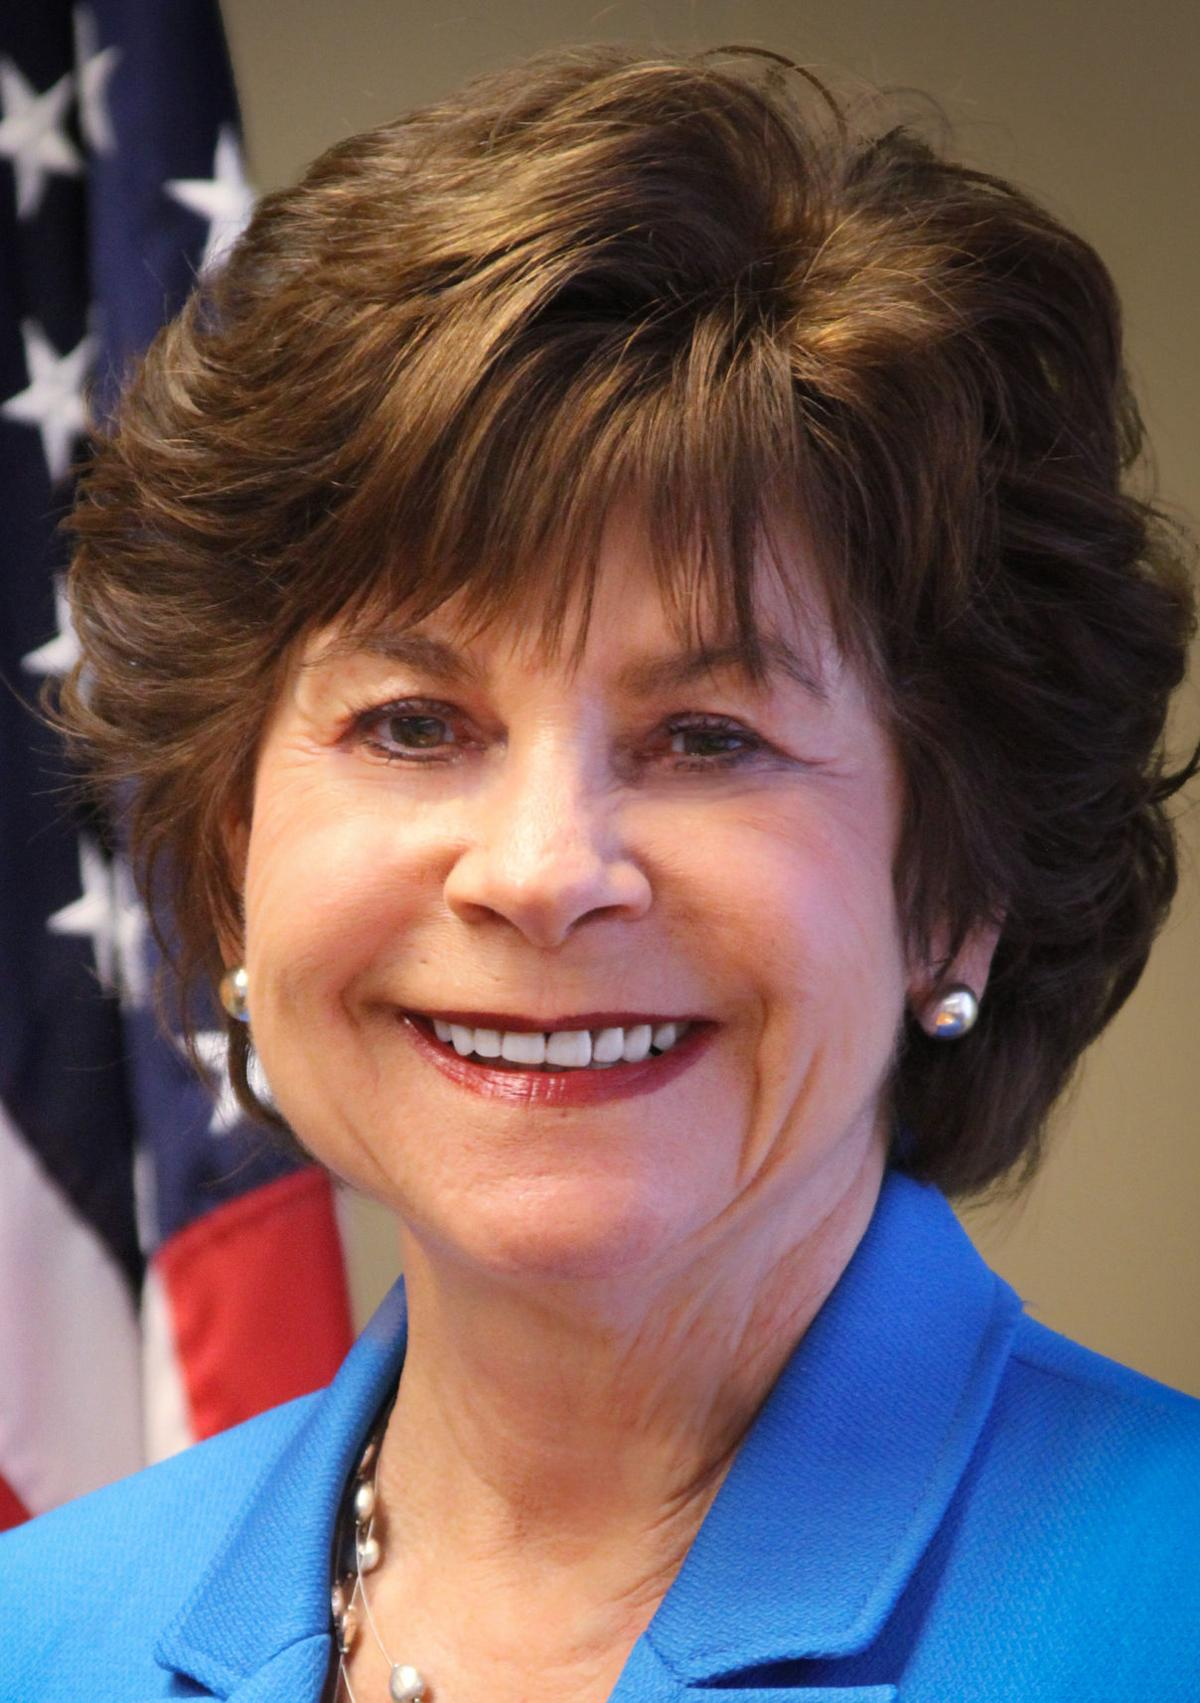 Pima County Attorney Barbara LaWall